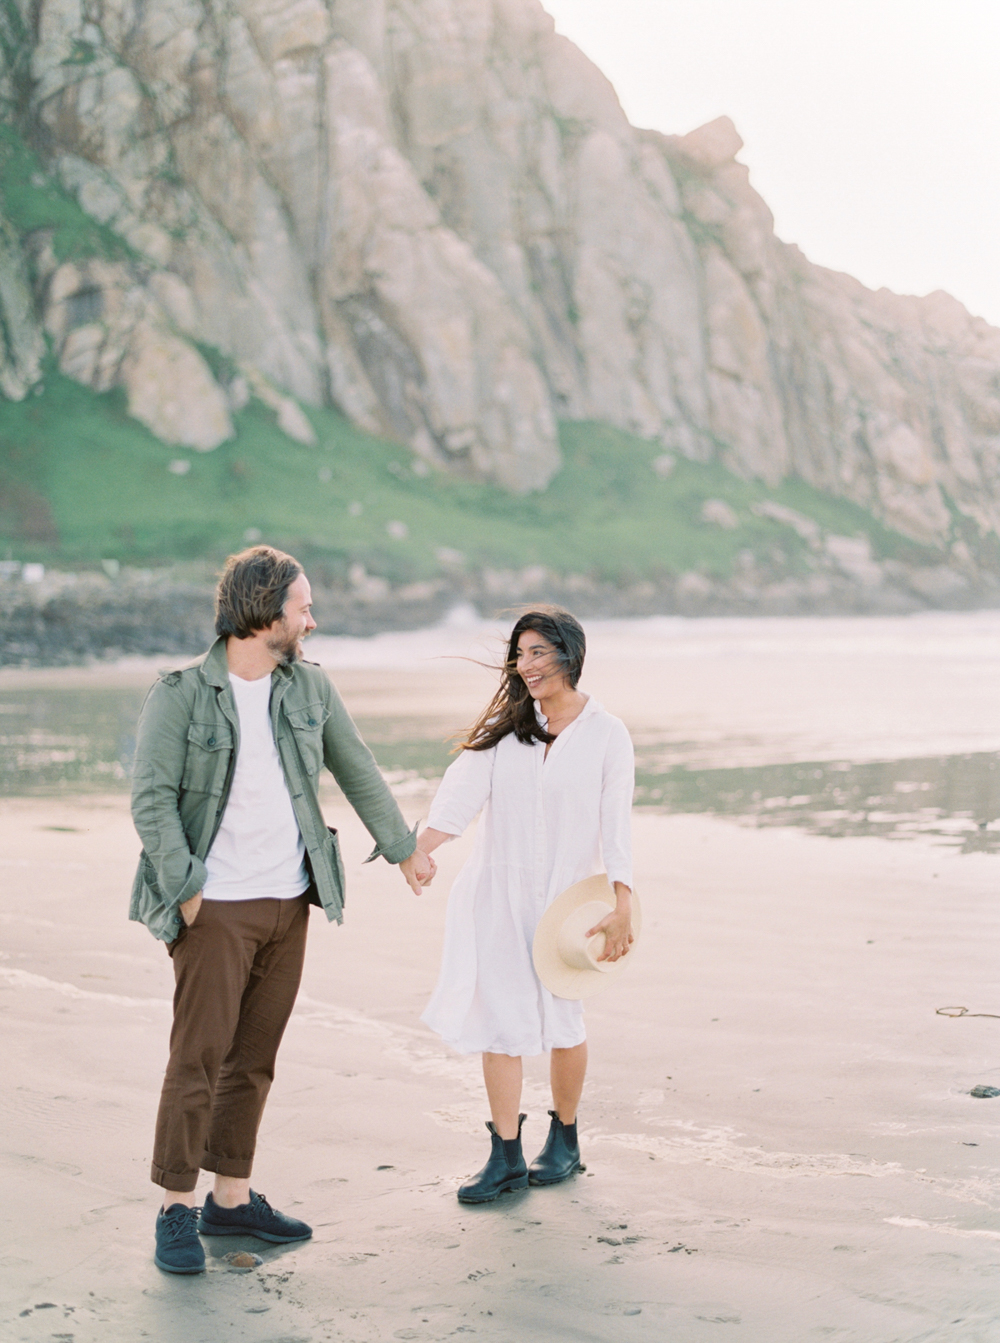 Morro Bay California Photoshoot